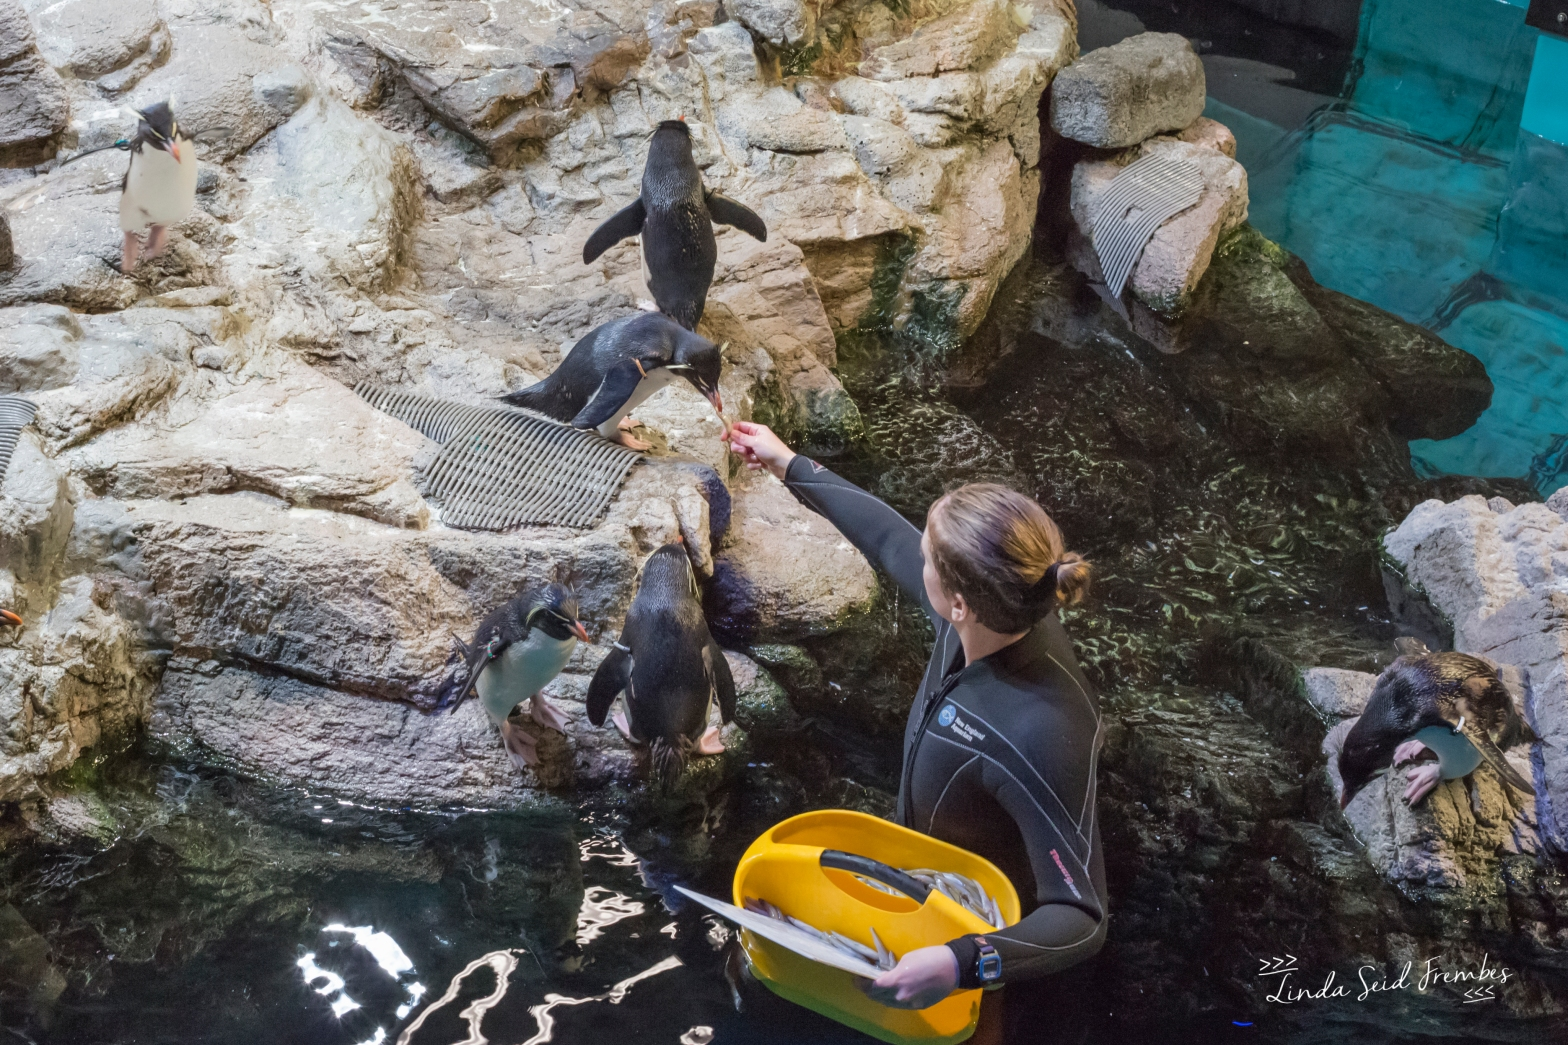 Penguins being hand-fed at the New England Aquarium